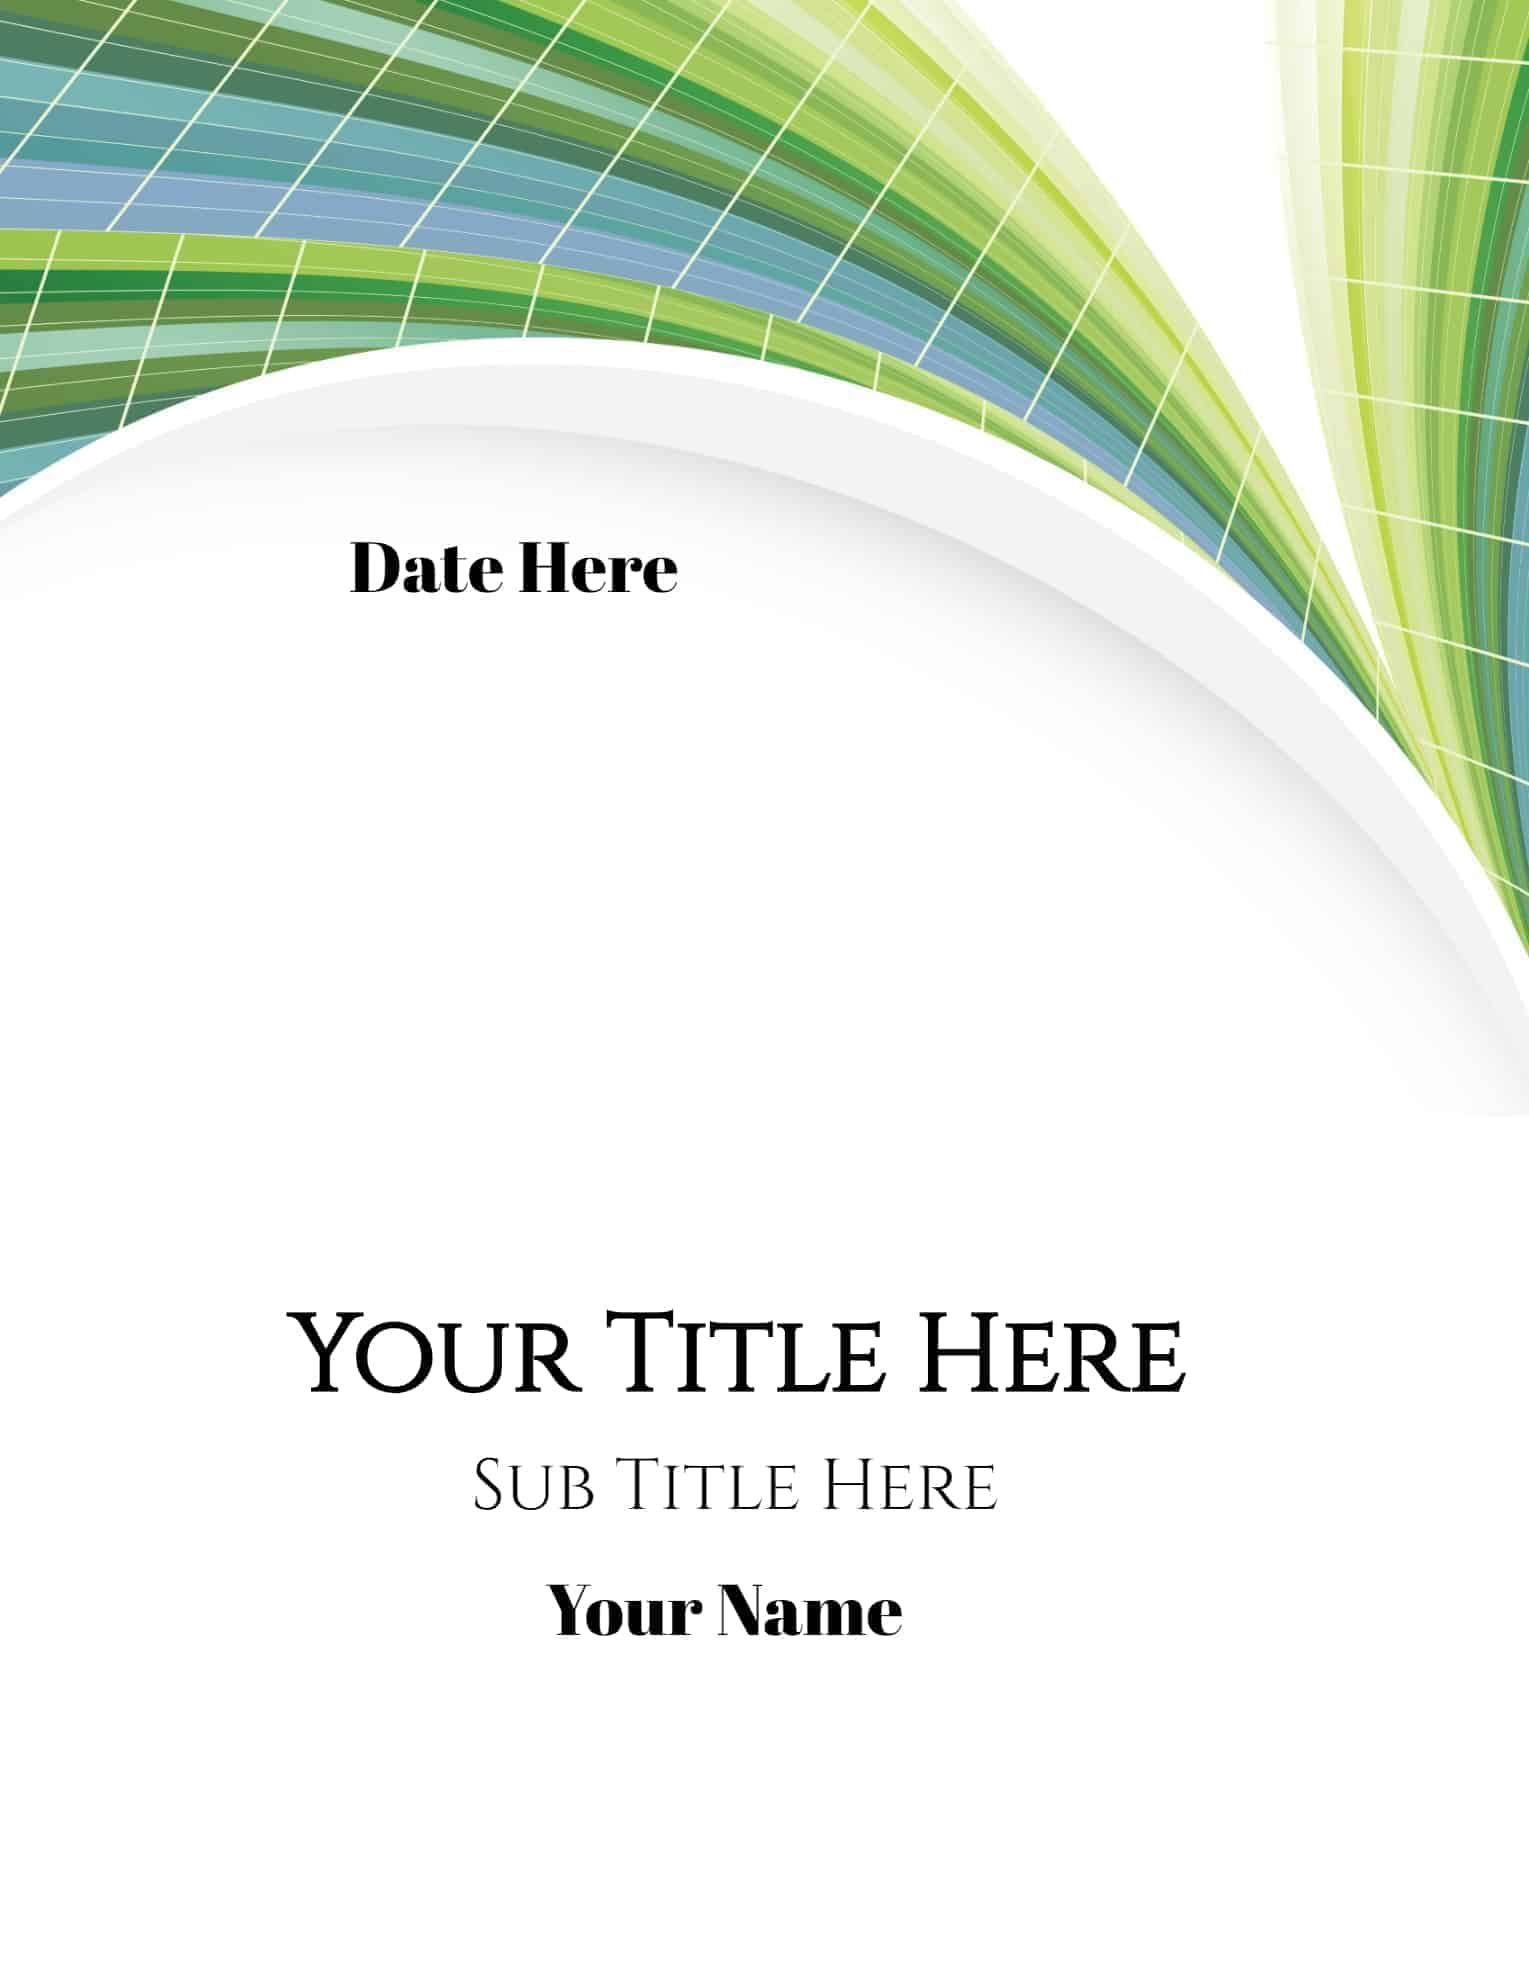 Free Printable Cover Pages That You Can Edit Online Add Your Own Text And Or Logo Cover Page Maker Cover Pages Cover Page Template Professional portfolio cover page template